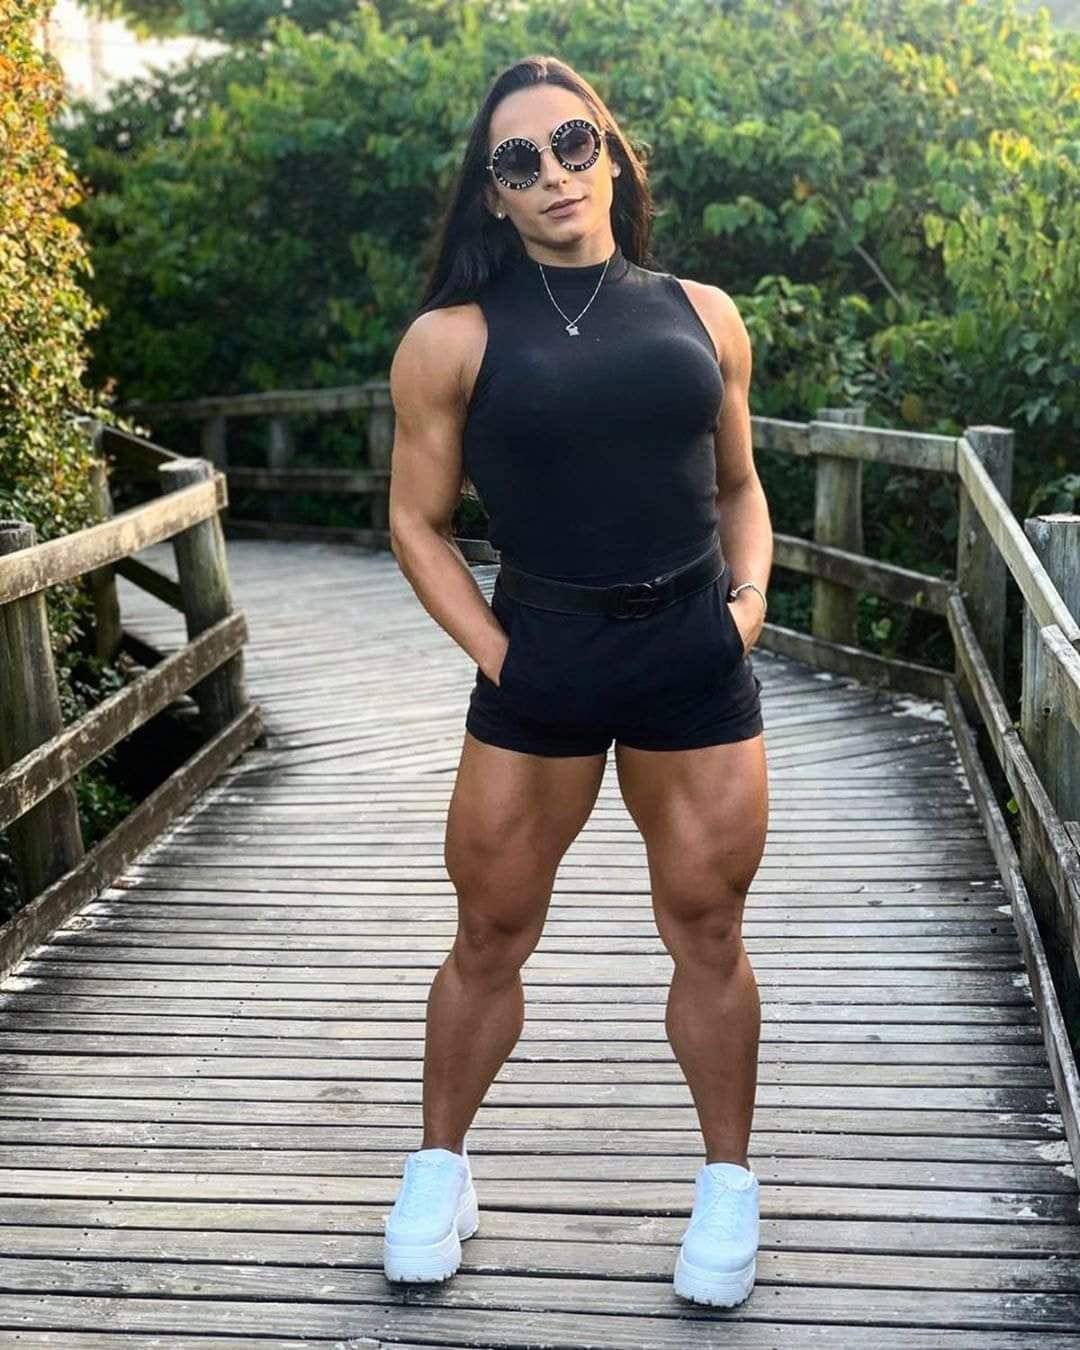 Her Calves Muscle Legs: Various Women with large muscular